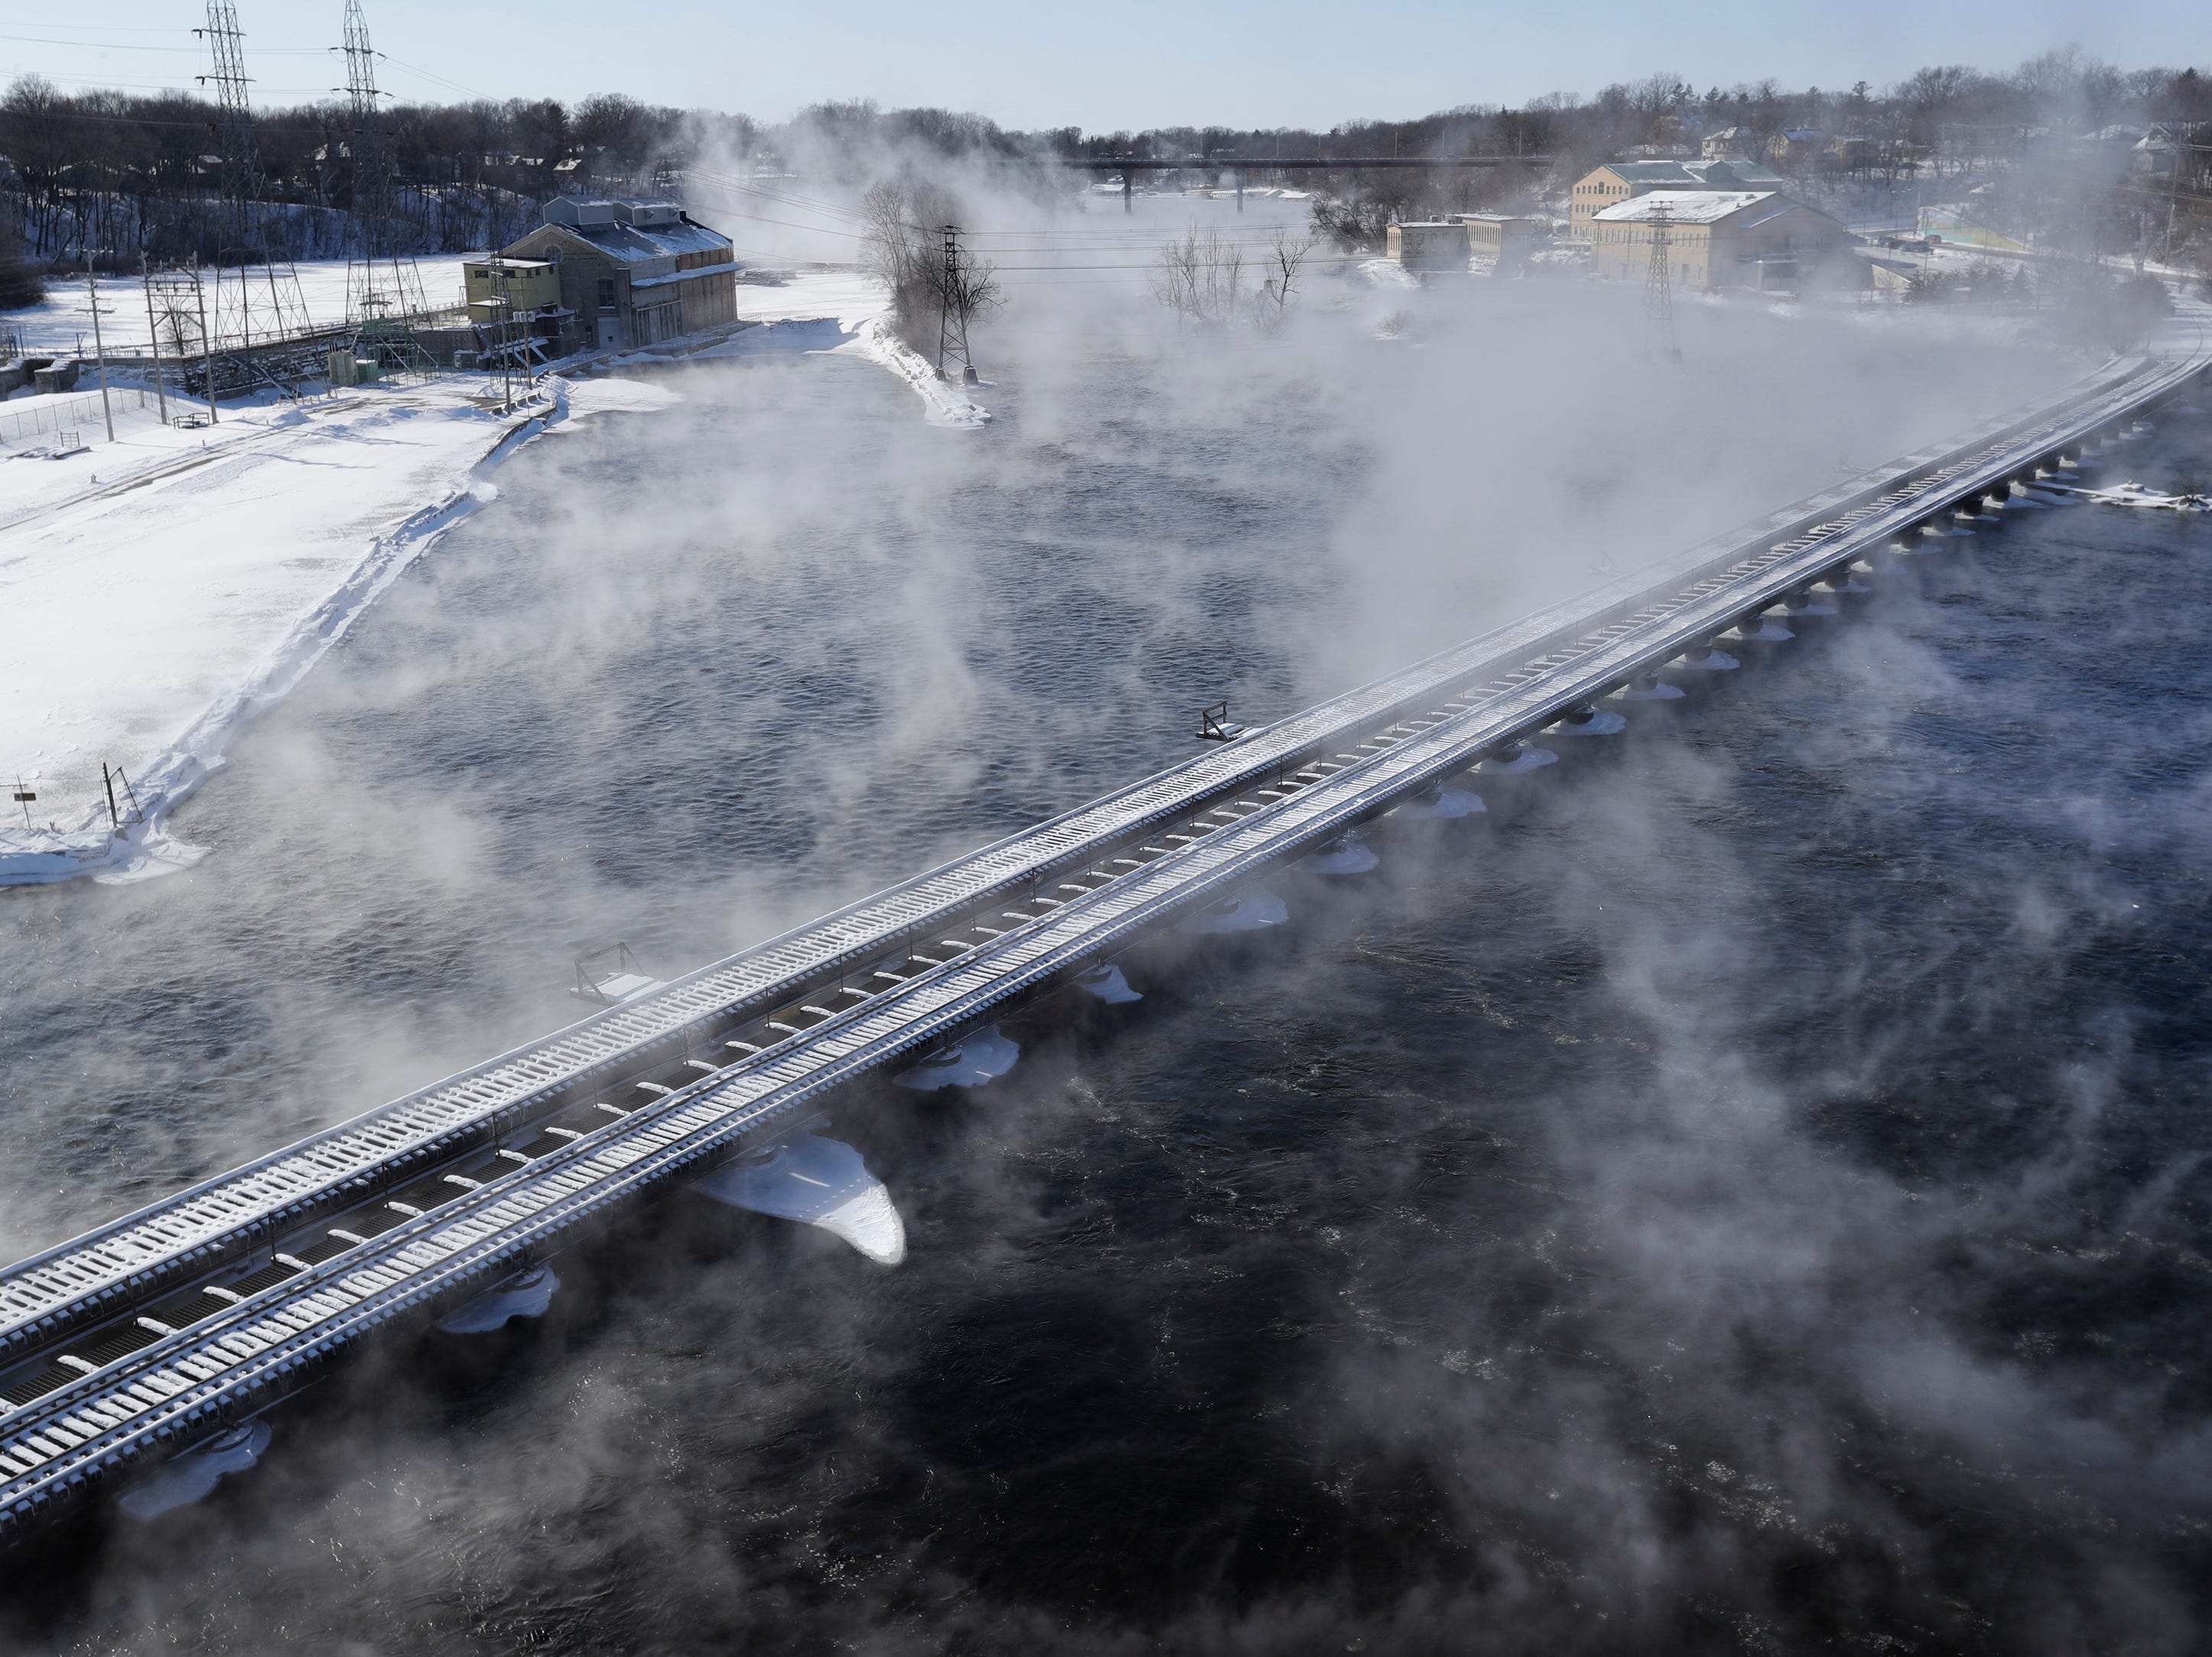 Vapor rises from the Fox River as frigid temperatures and strong winds engulf the area Wednesday, January 30, 2019, in Appleton, Wis. 